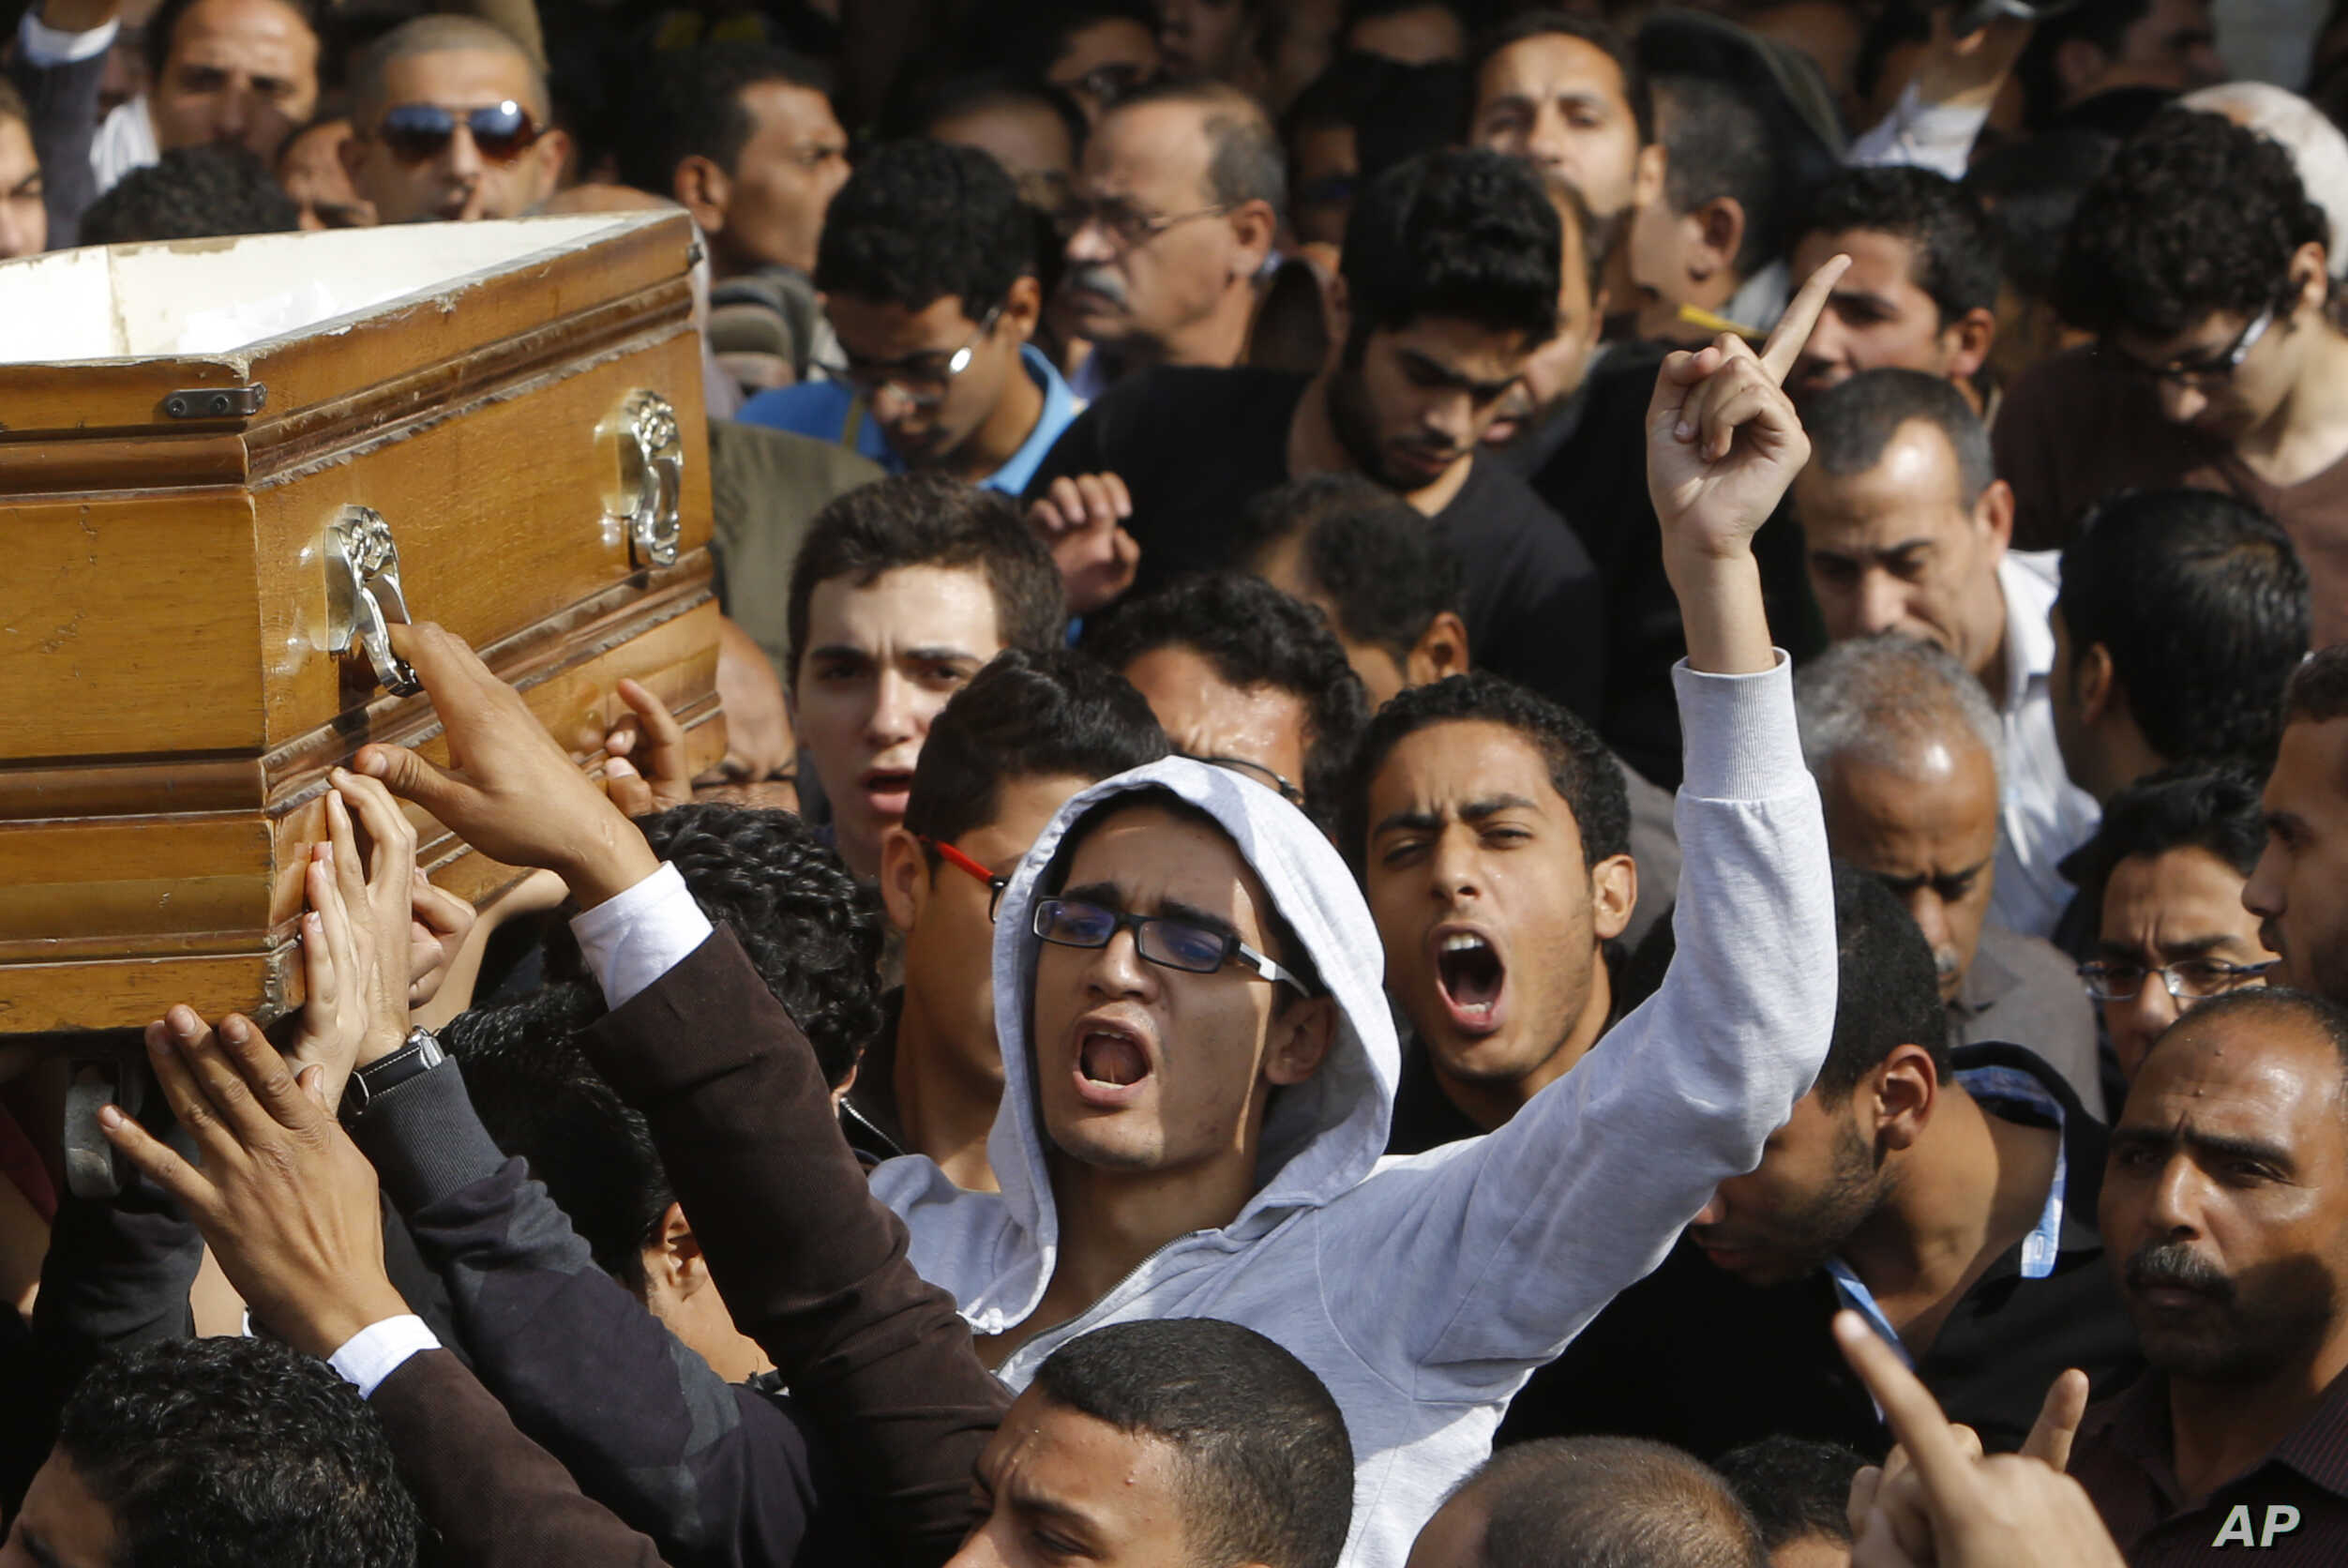 Relatives and colleagues of Mohammed Reda, 19, an Egyptian student who was killed Thursday during clashes with security forces near Cairo University, chant slogans as they carry a coffin following Friday prayers in Cairo, Egypt, Friday, Nov. 29, 2013